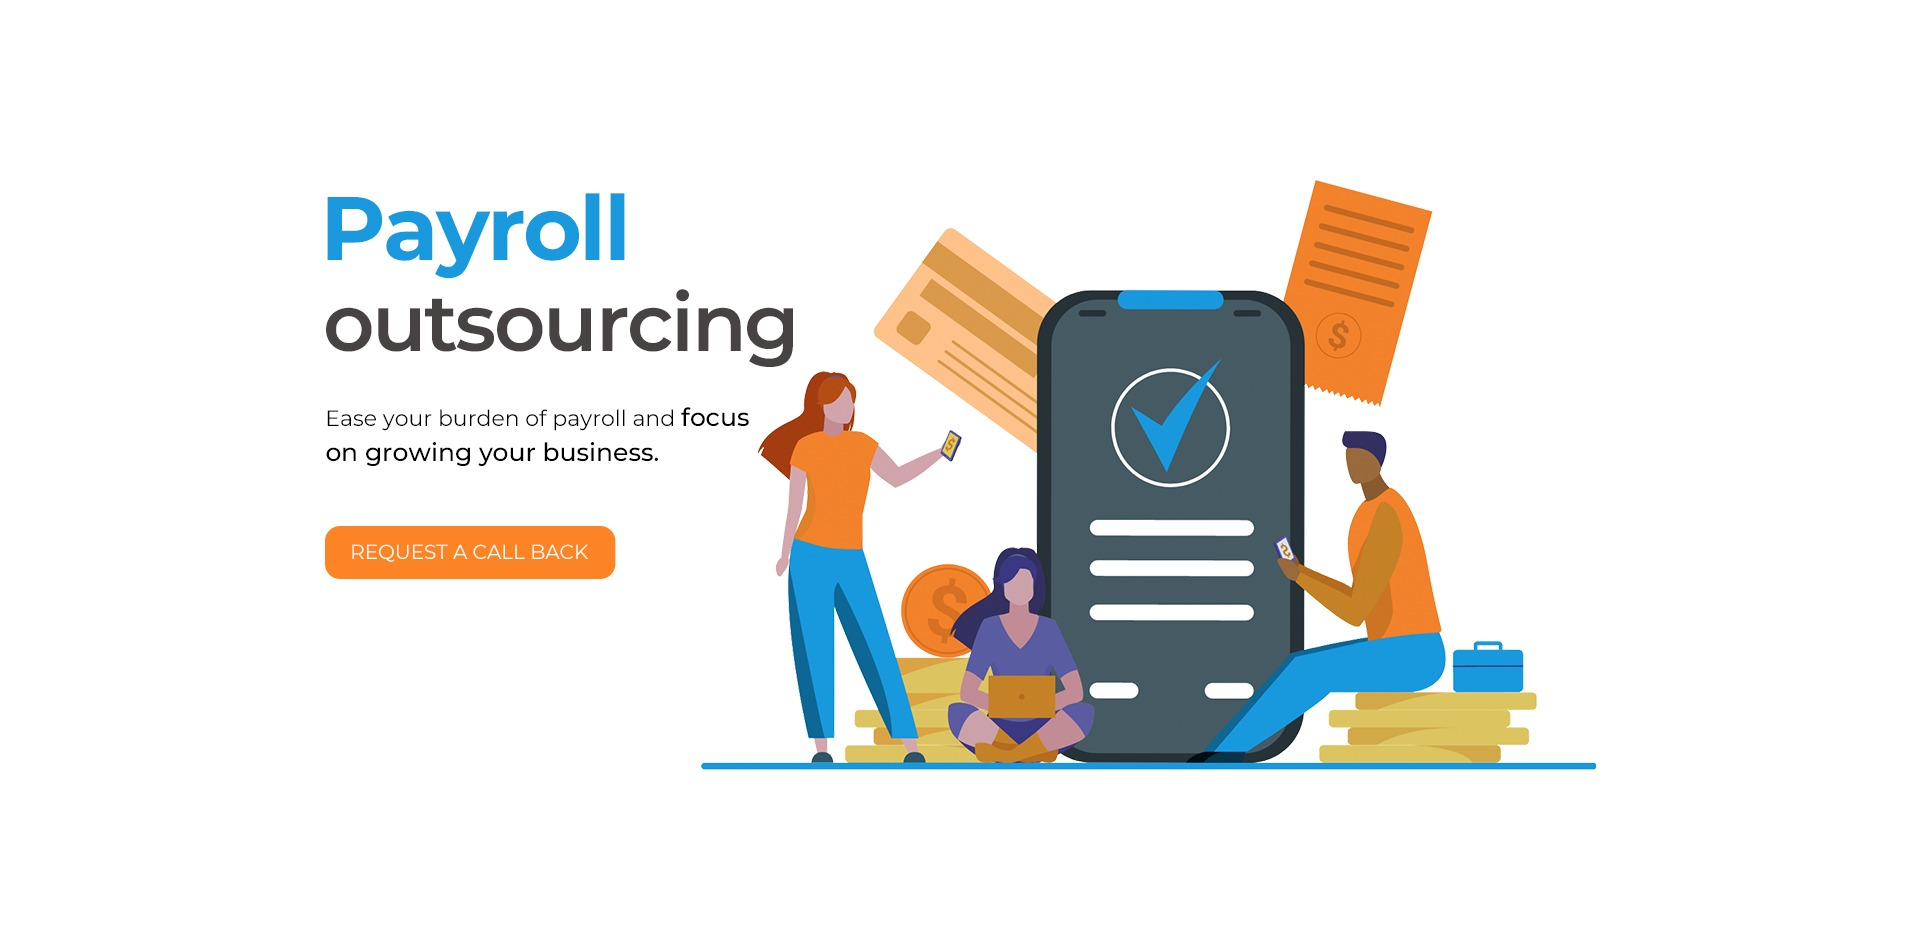 5. payroll-outsourcing